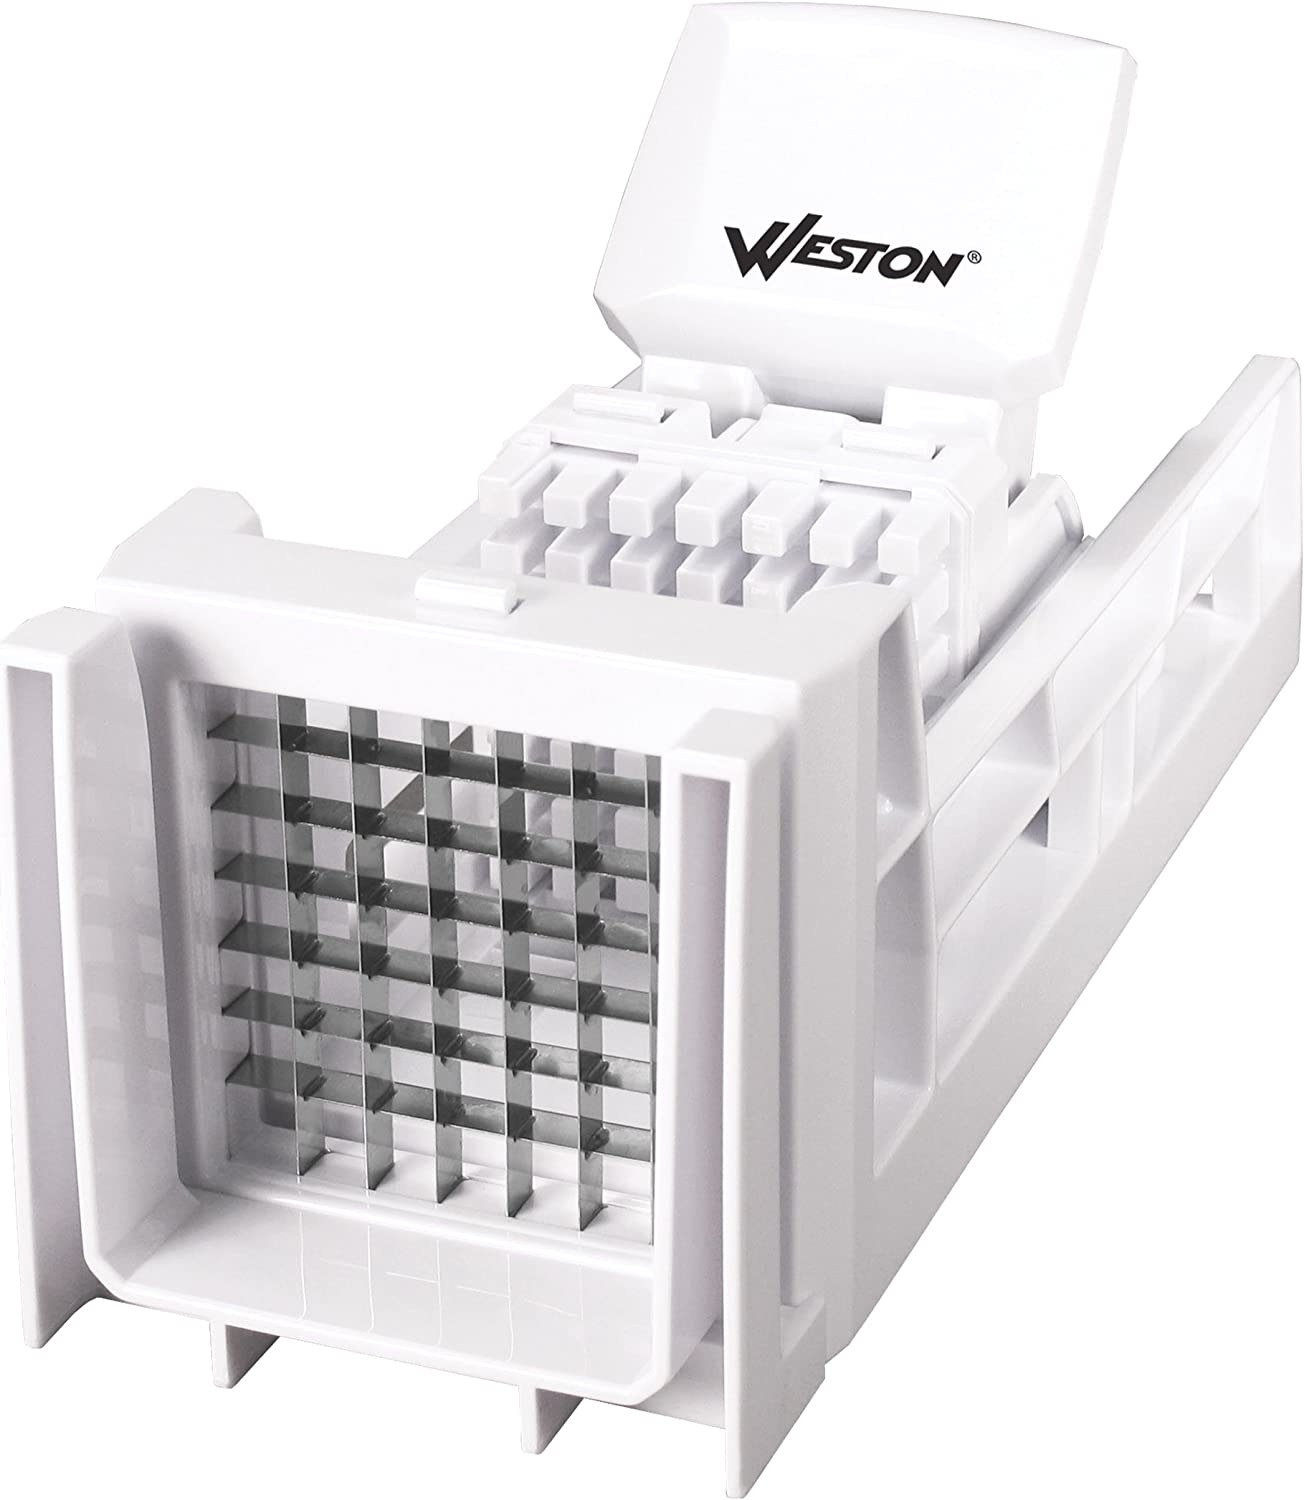 Weston French Fry Cutter and Veggie Dicer, White